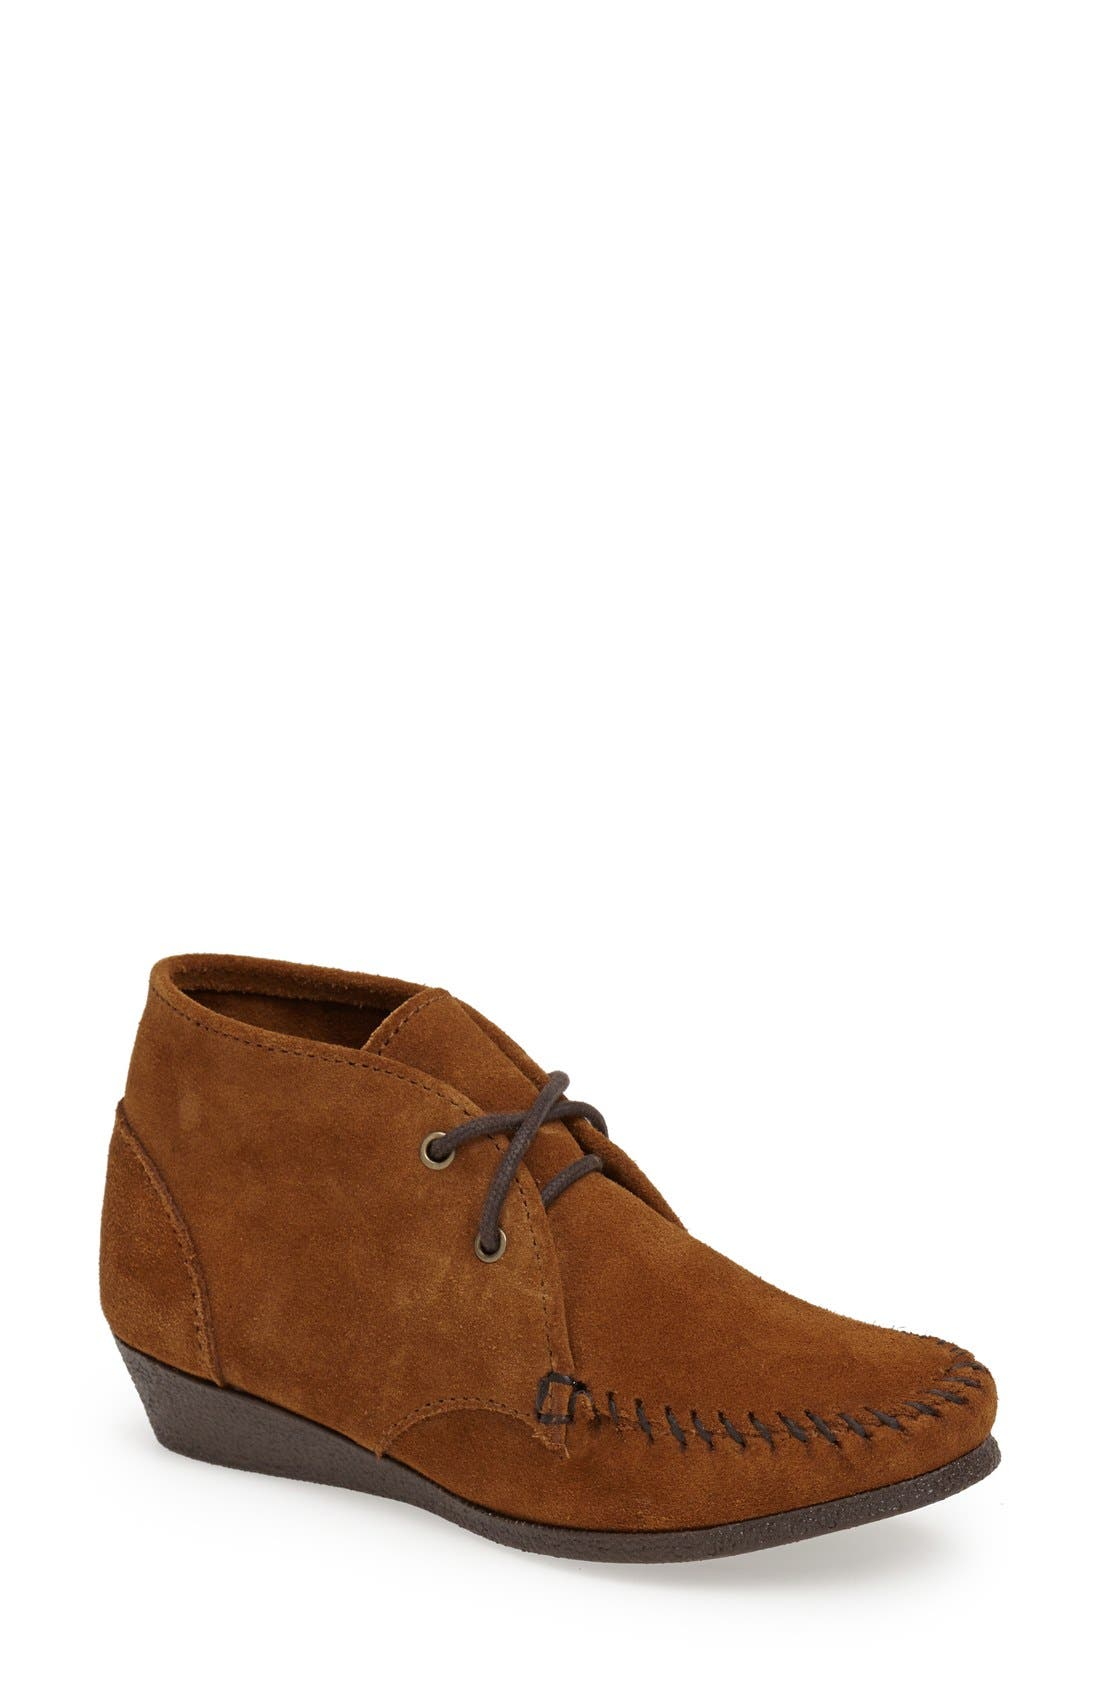 Alternate Image 1 Selected - Minnetonka Chukka Wedge Bootie (Women)